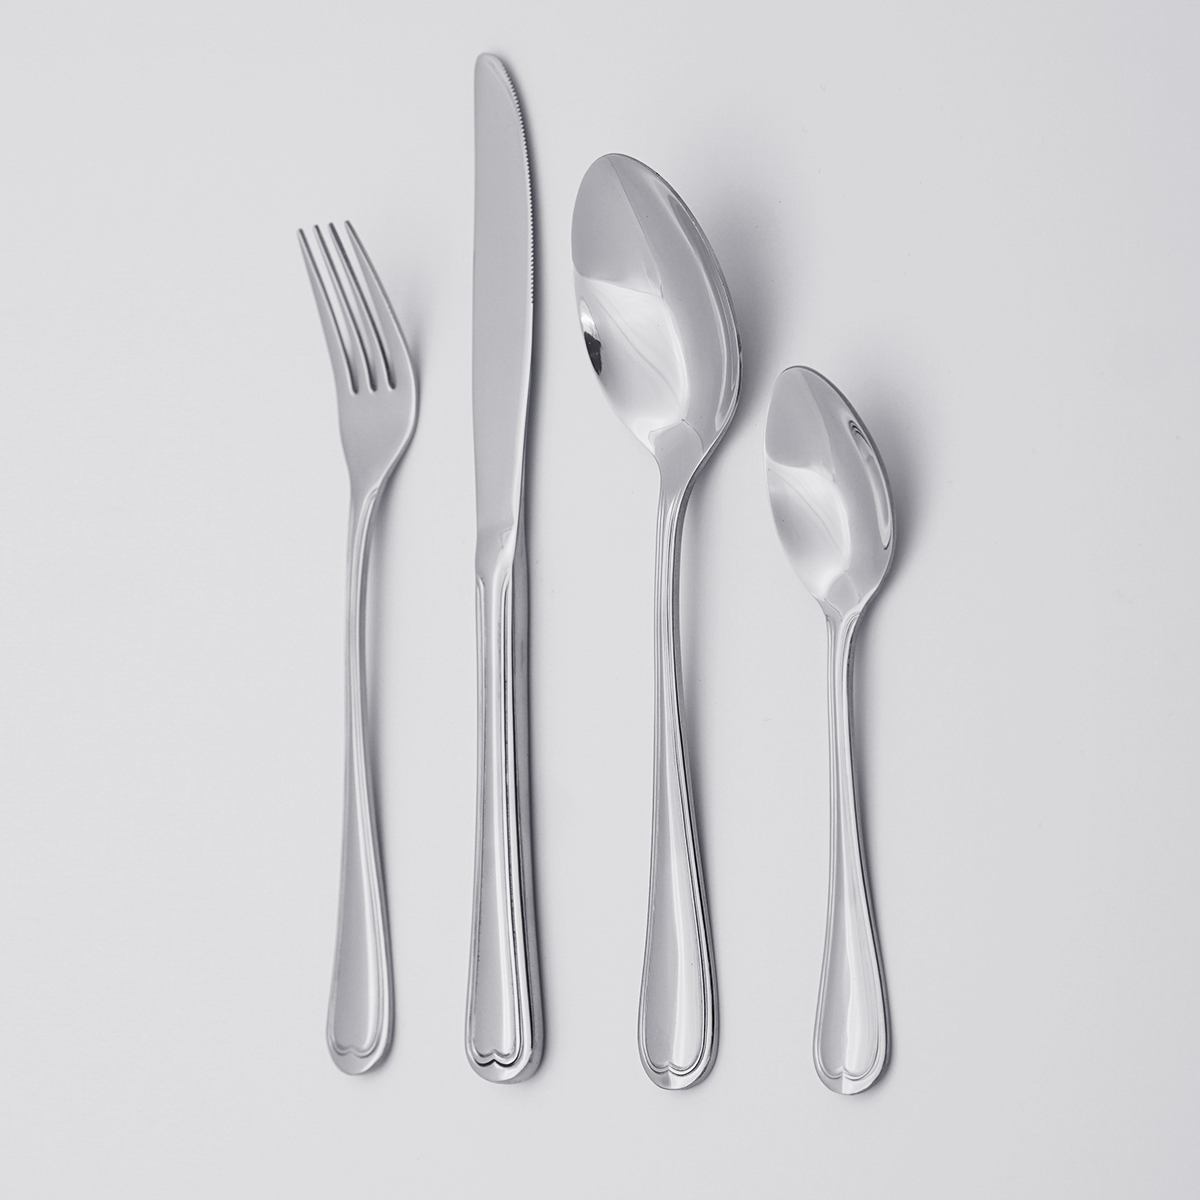 Wholesale Bulk Stainless Steel Knife Spoon Fork Serving Cutlery For Restaurant Hotel